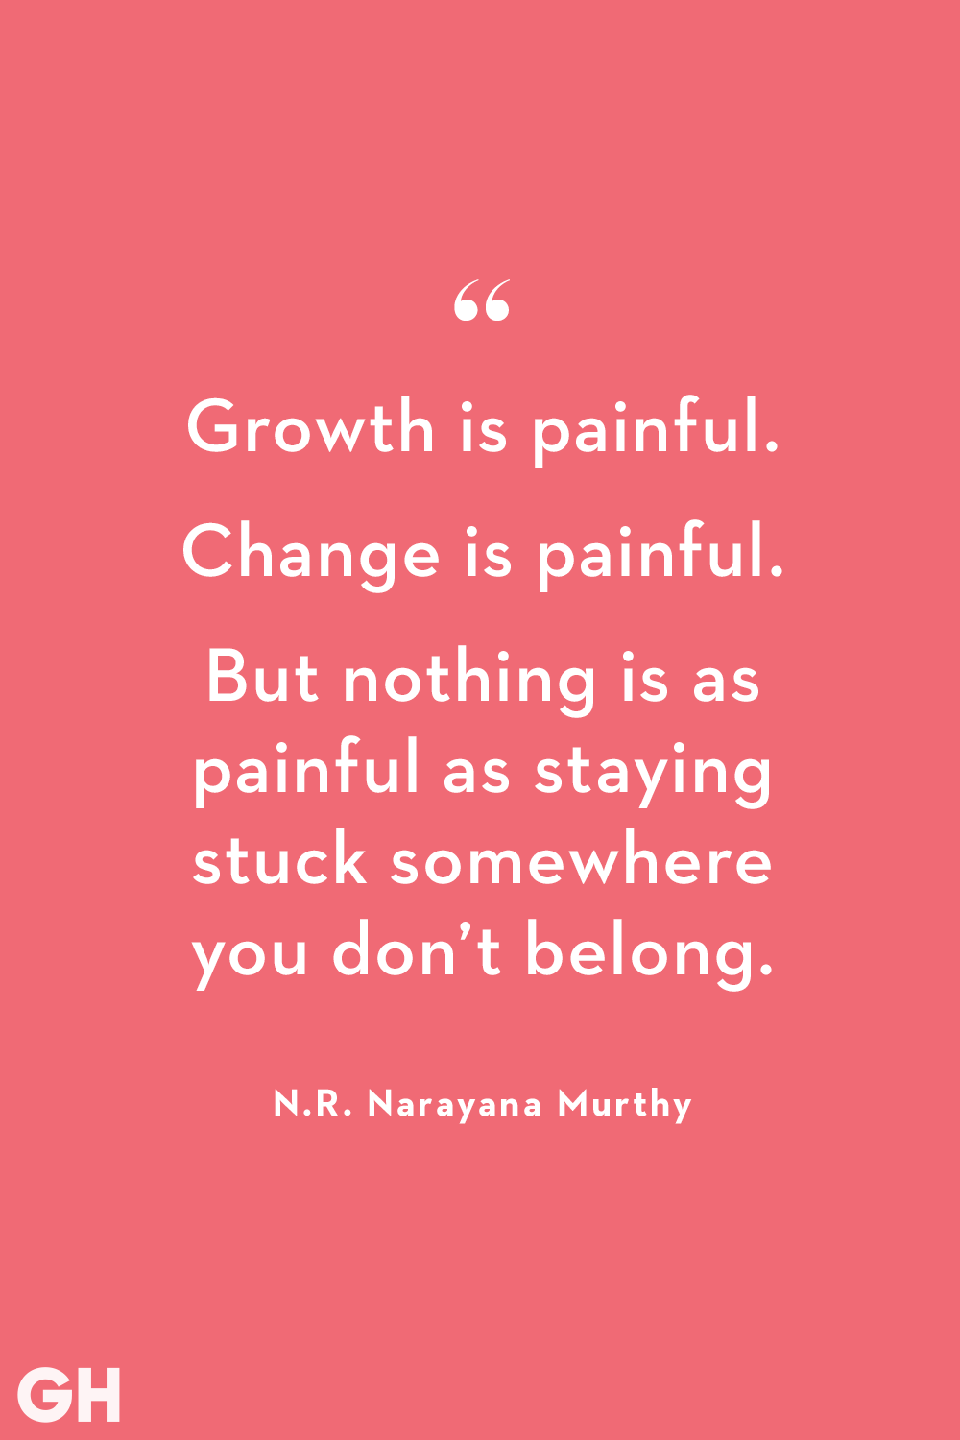 <p>Growth is painful. Change is painful. But nothing is as painful as staying stuck somewhere you don't belong.</p>